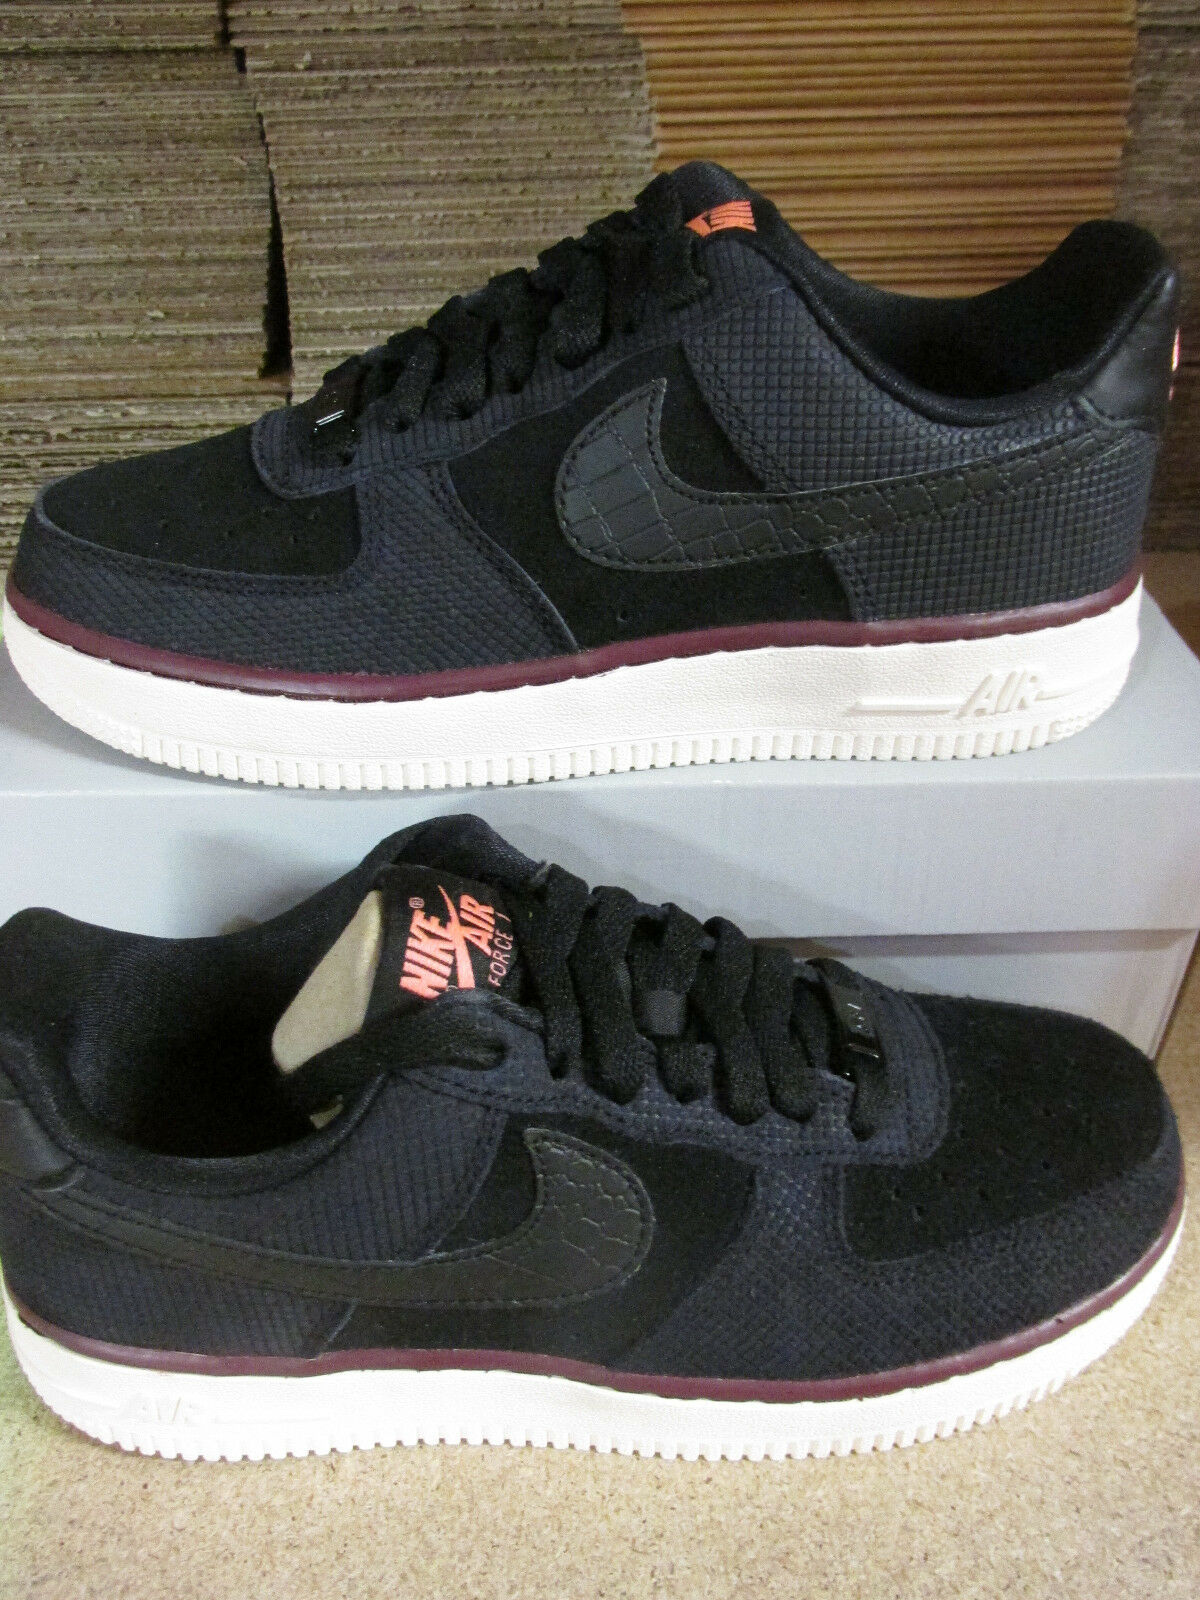 nike Femme air force 1 '07 suede trainers 749263 003 sneakers chaussures